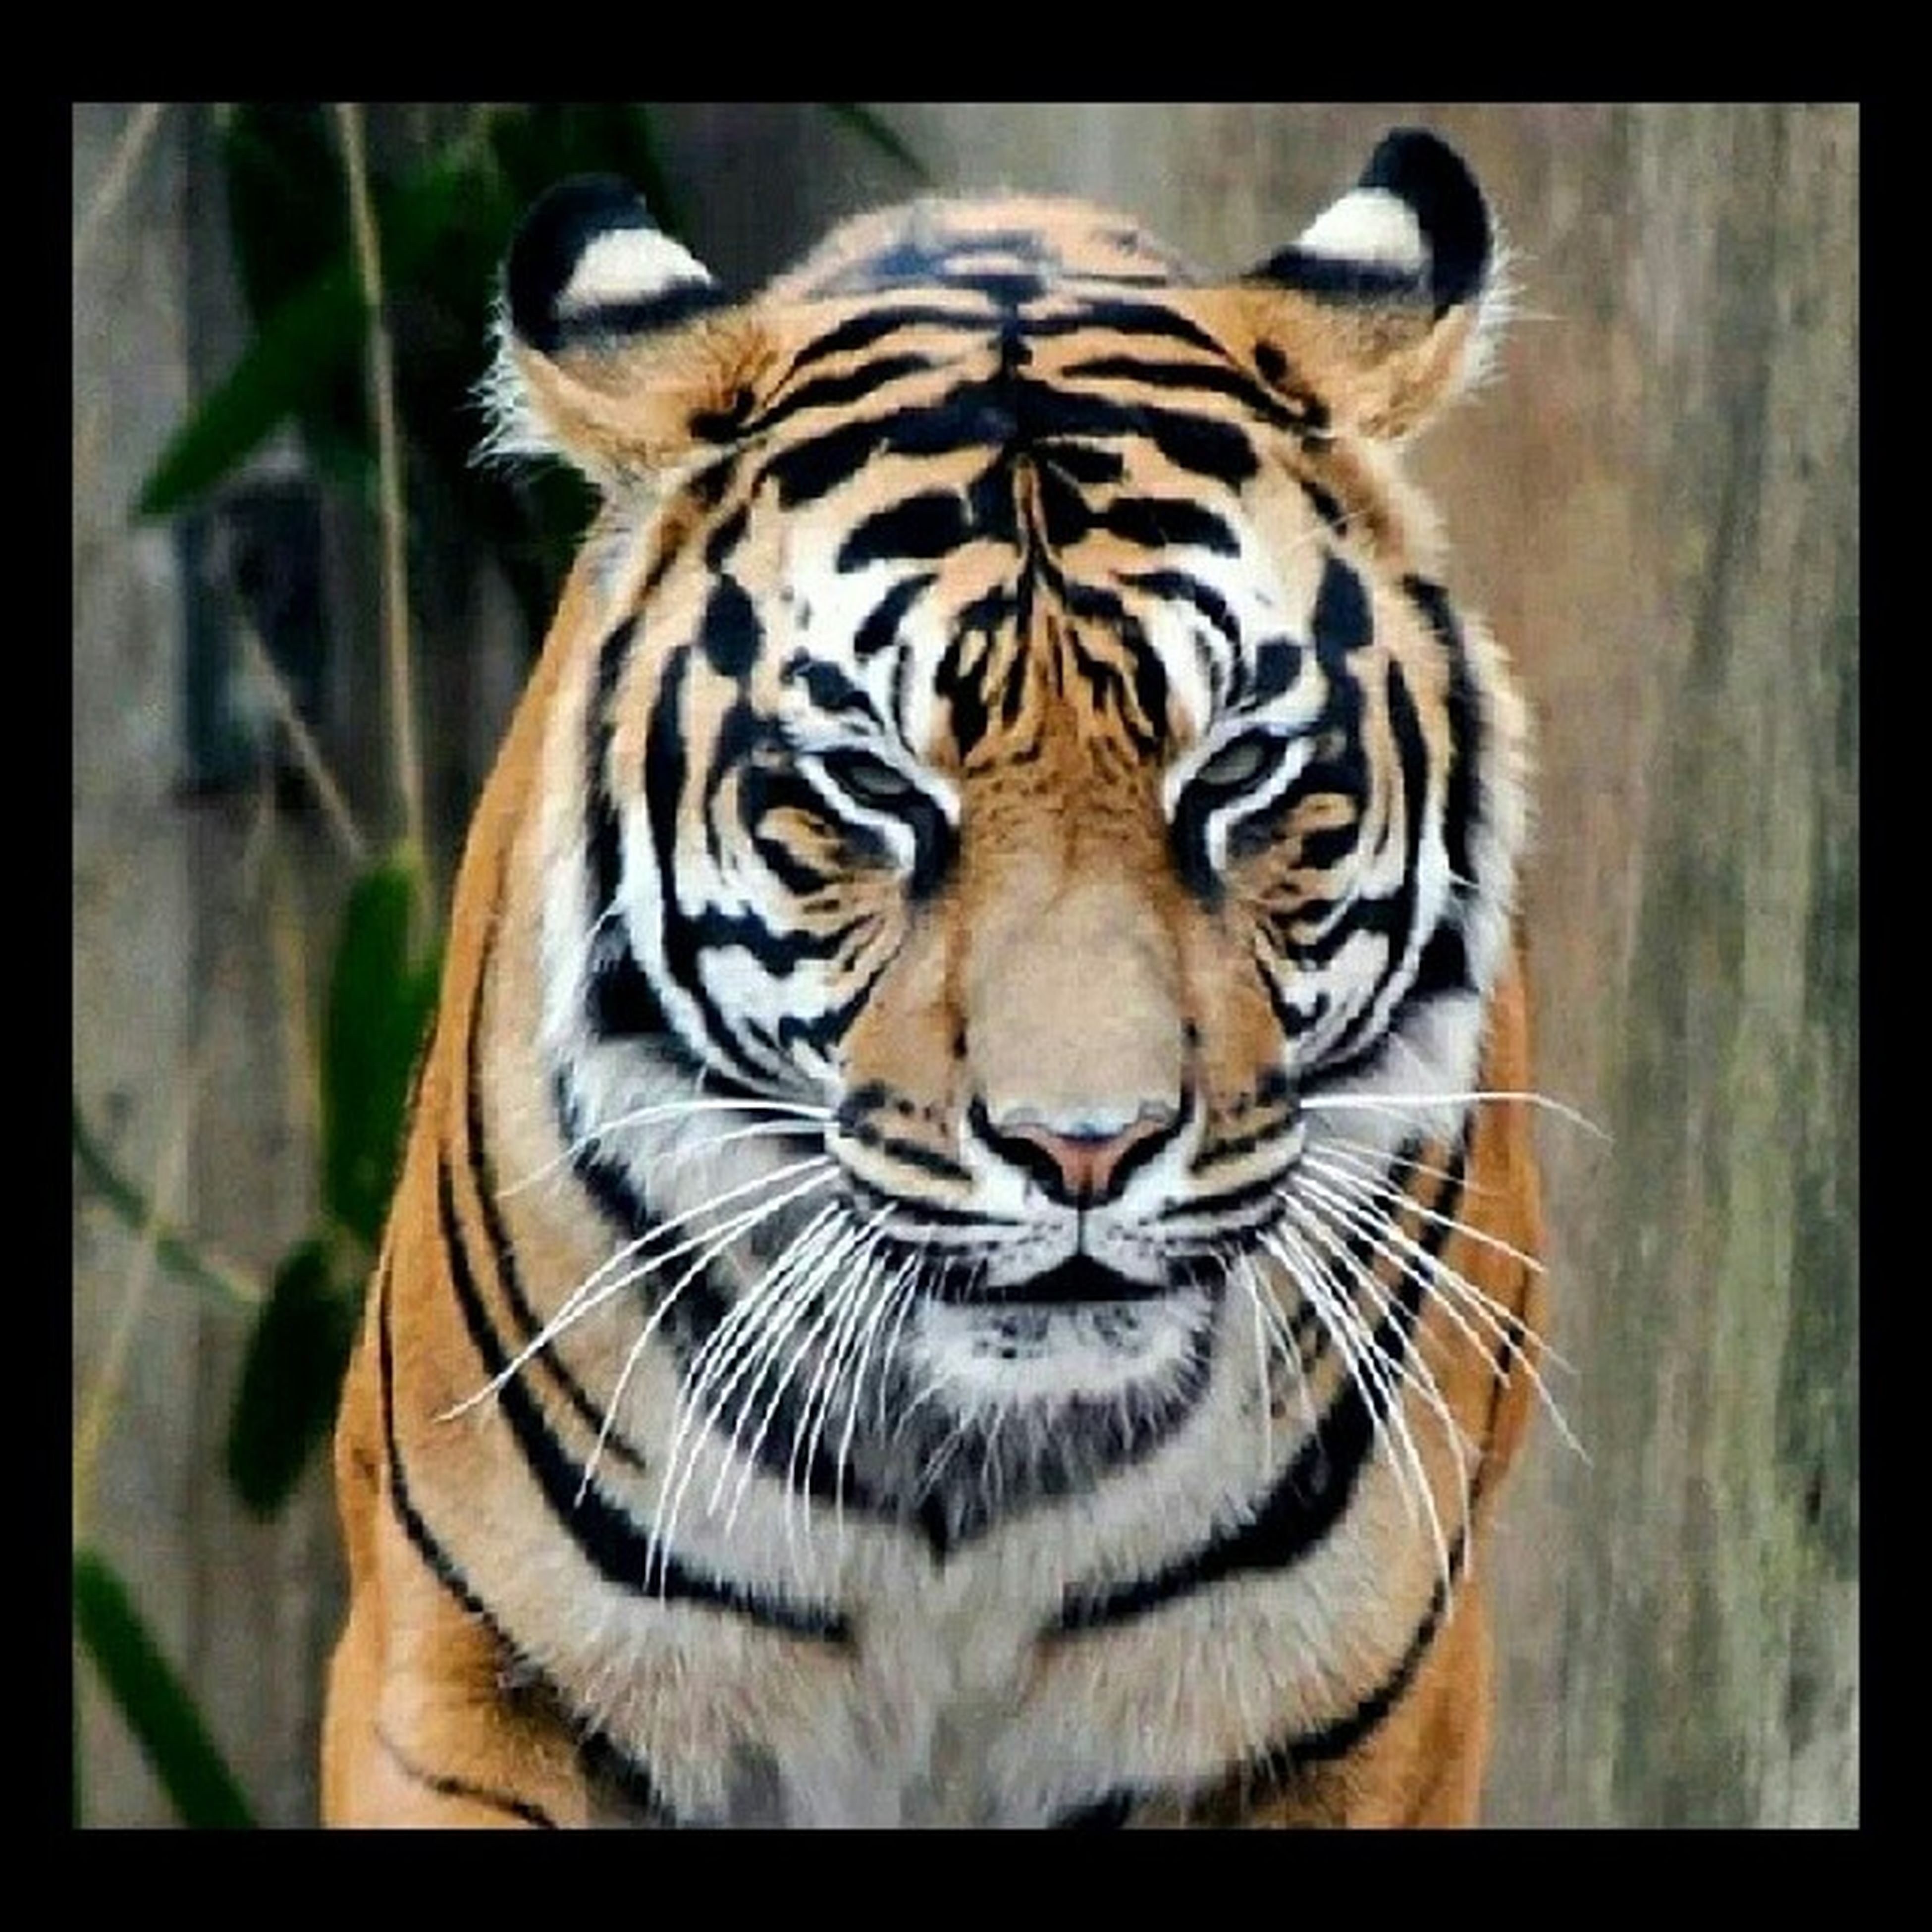 animal themes, one animal, animal markings, tiger, animals in the wild, wildlife, natural pattern, mammal, striped, safari animals, big cat, zoo, close-up, endangered species, undomesticated cat, leopard, animal head, zoology, no people, outdoors